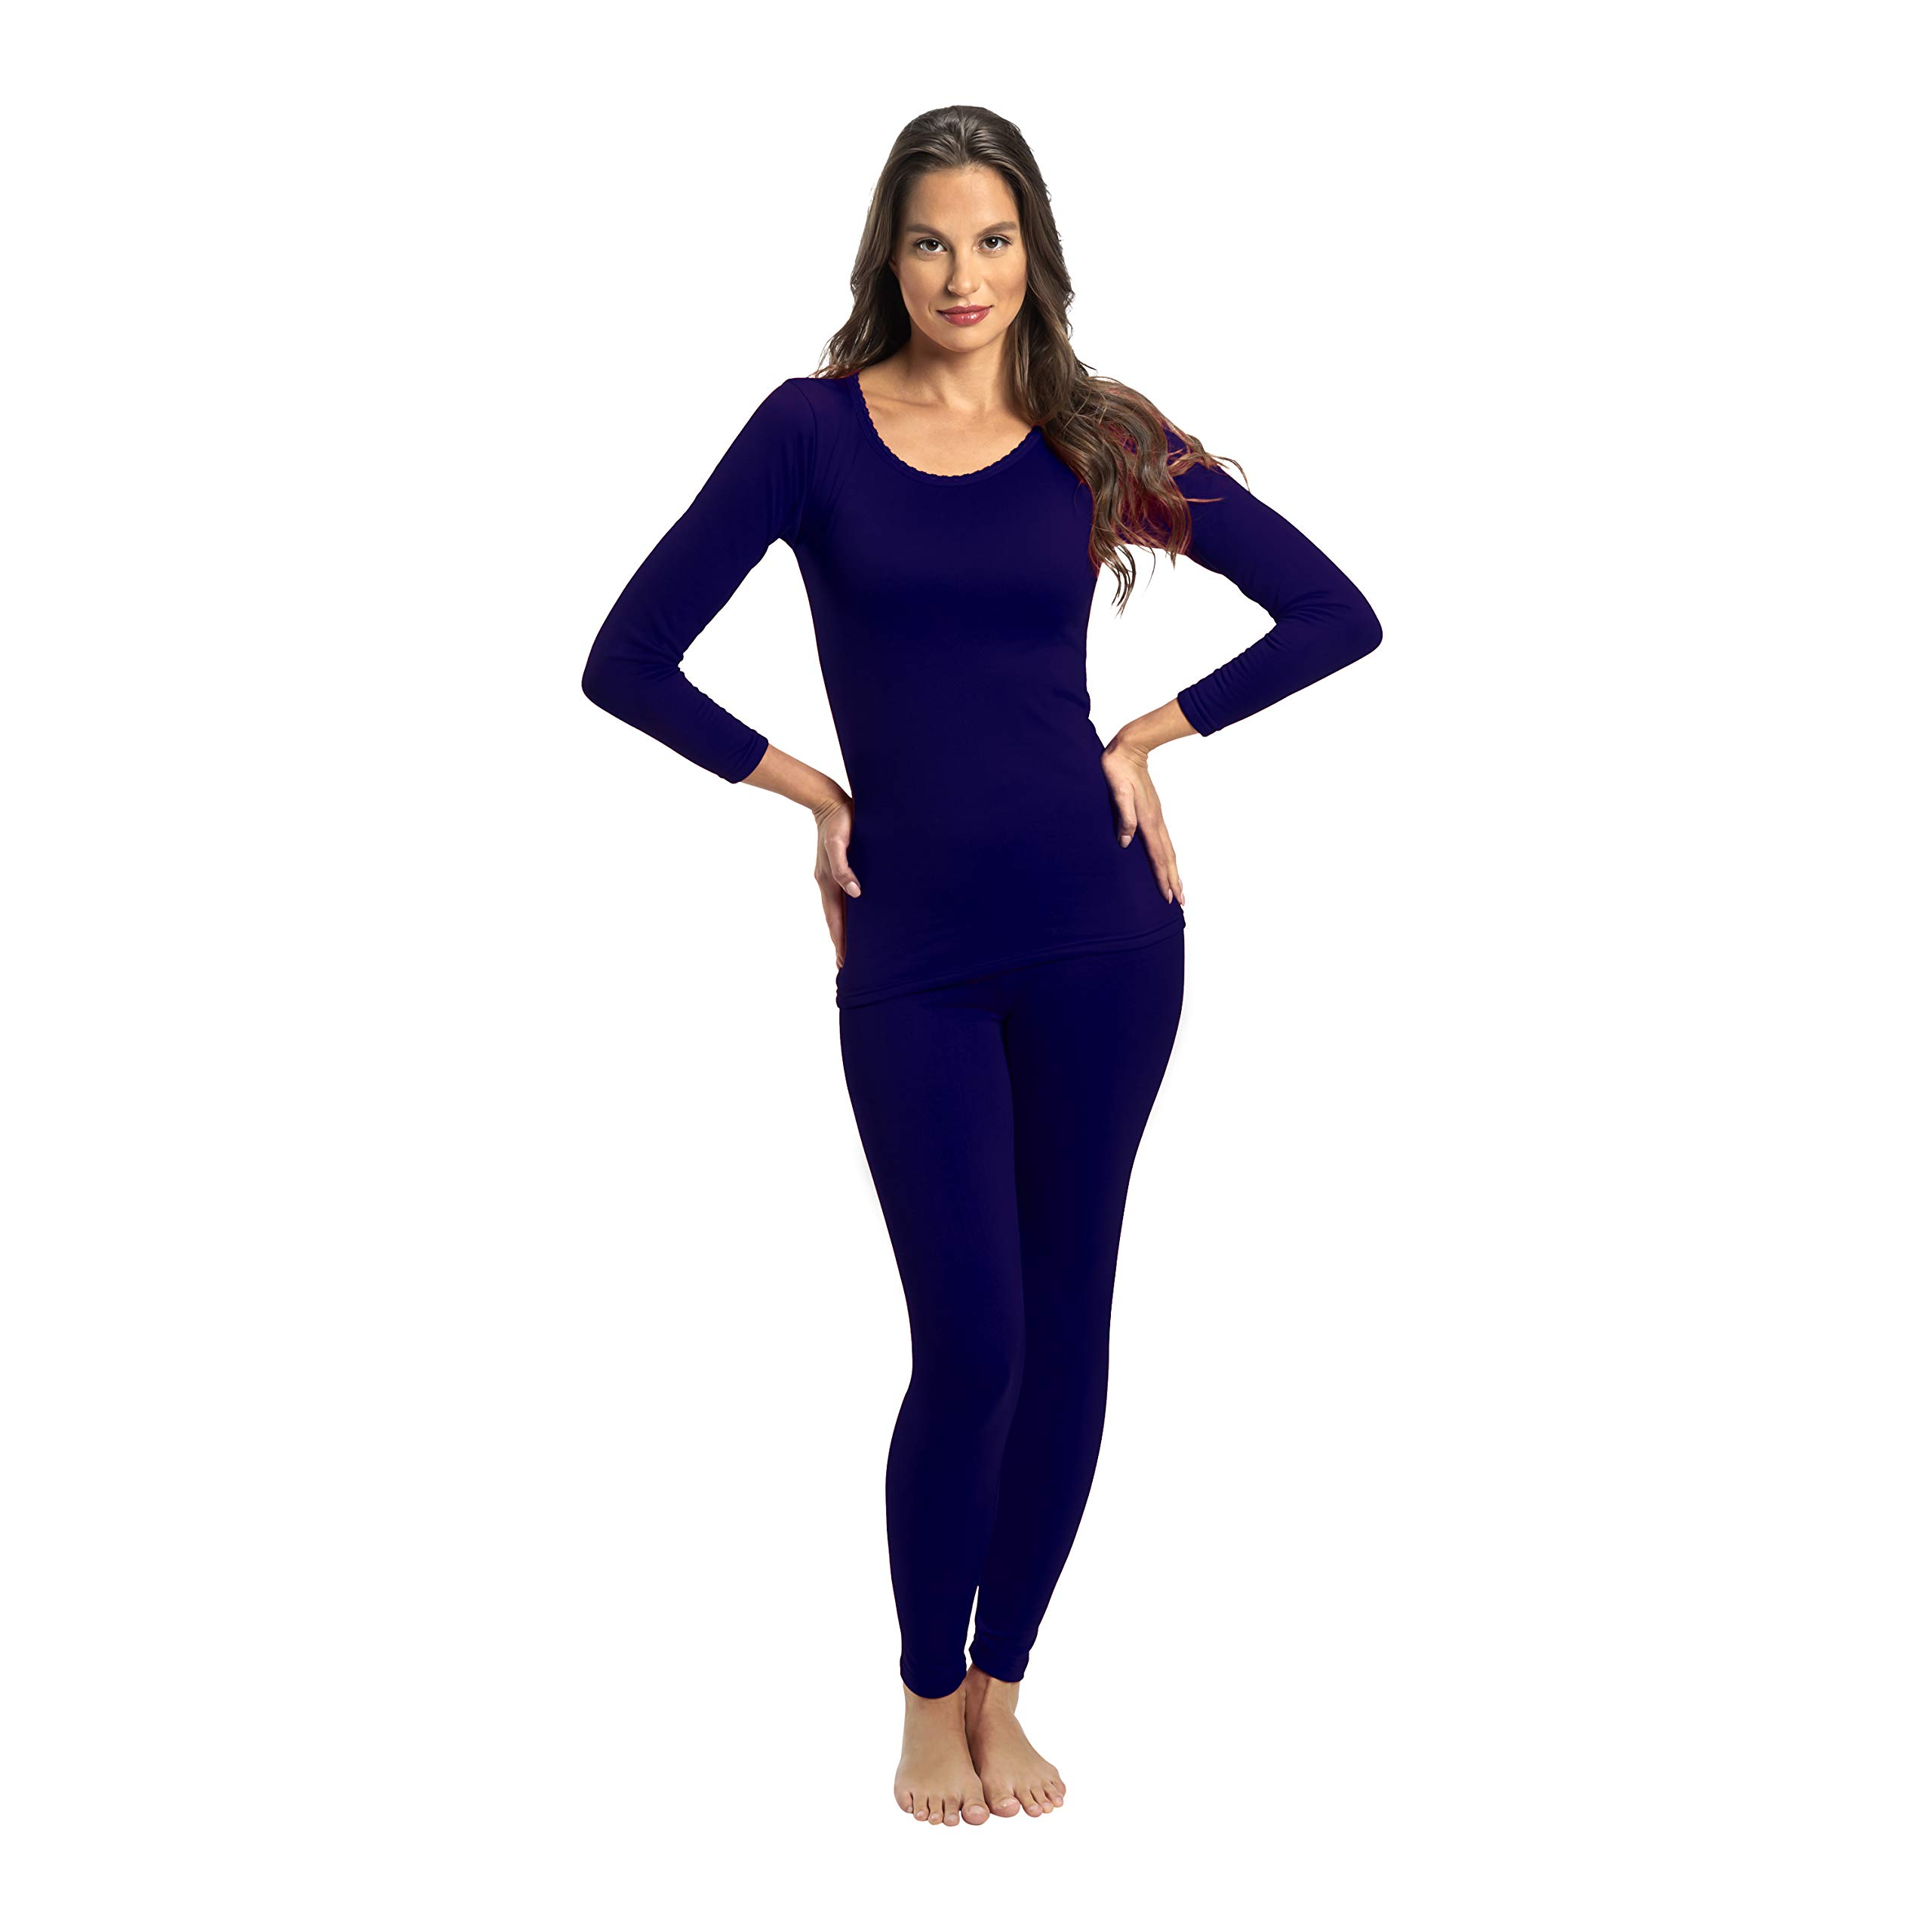 Rocky Thermal Underwear for Women Fleece Lined Thermals Women's Base Layer Long John Set Royal Blue by Rocky